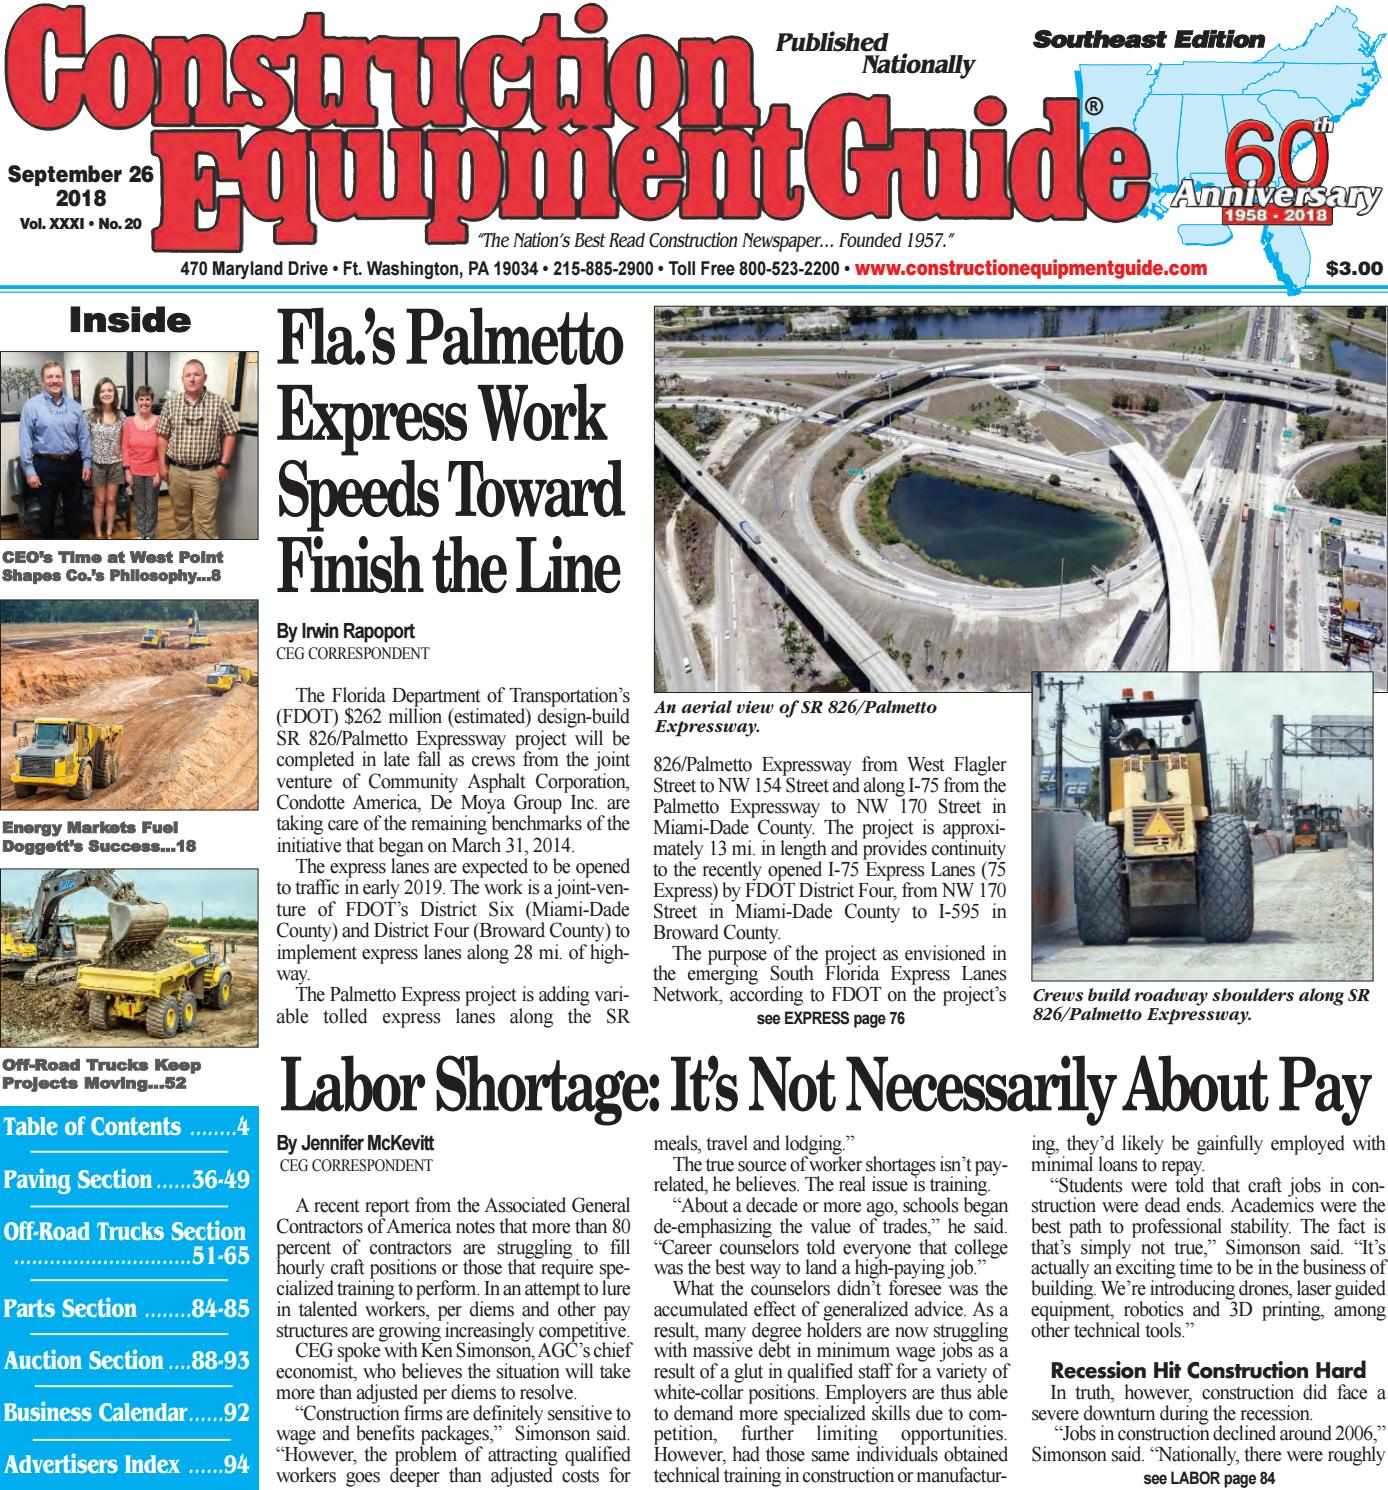 Southeast 20 September 26, 2018 by Construction Equipment Guide ...